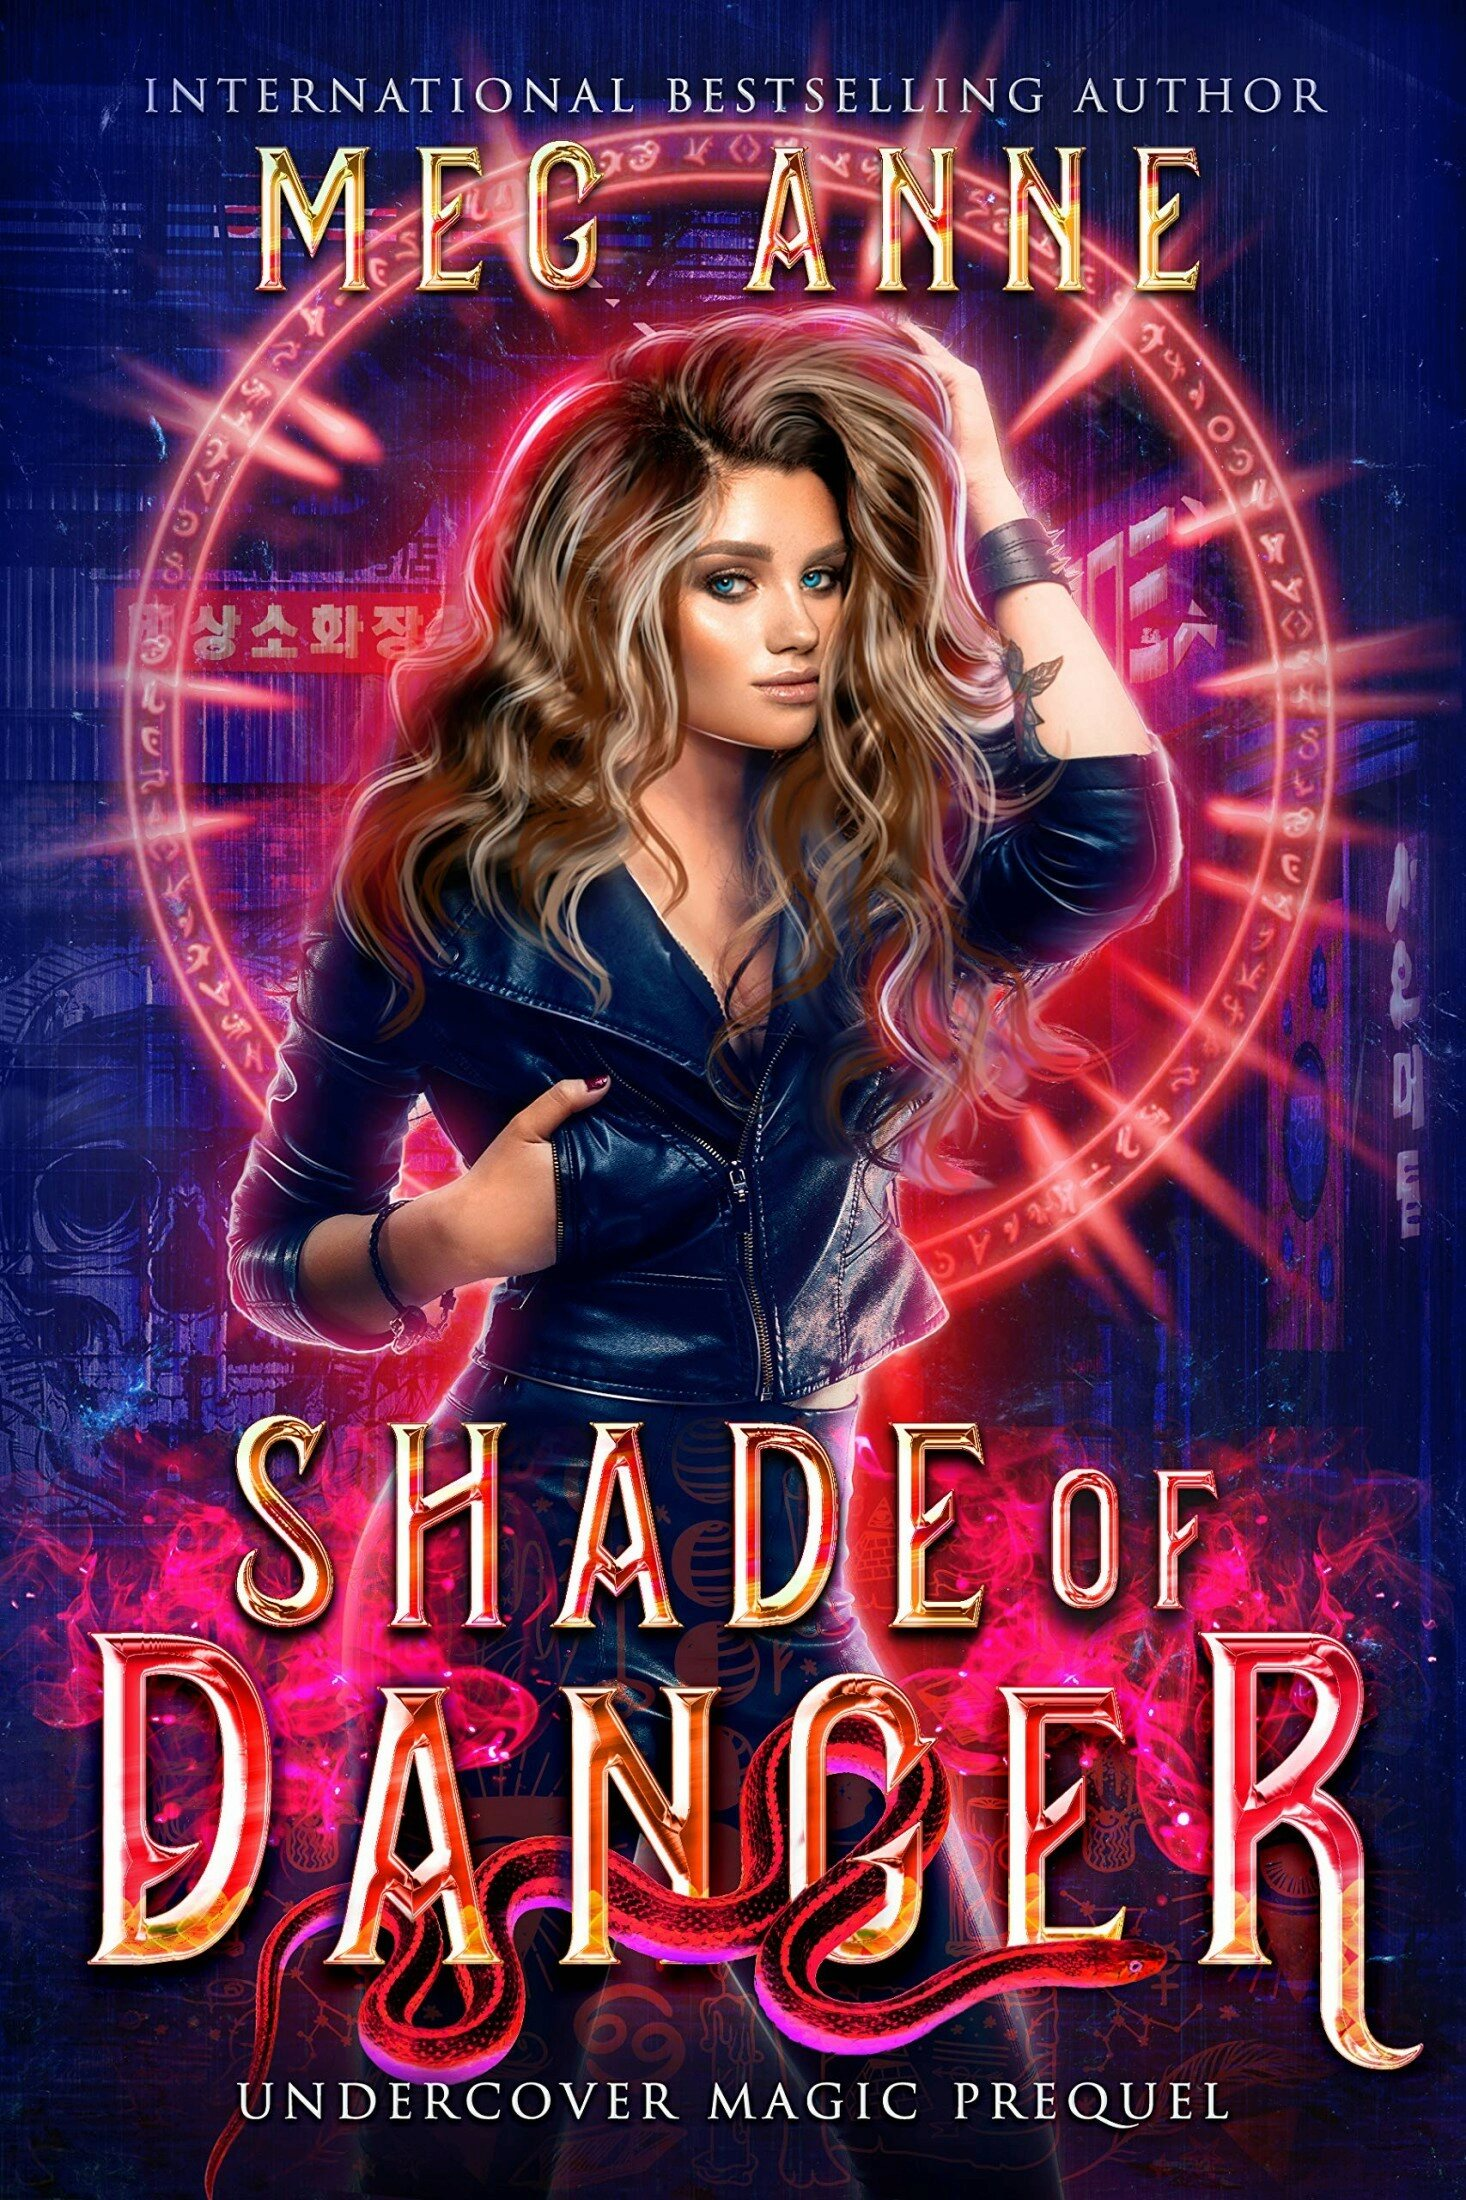 Shade of danger COVER